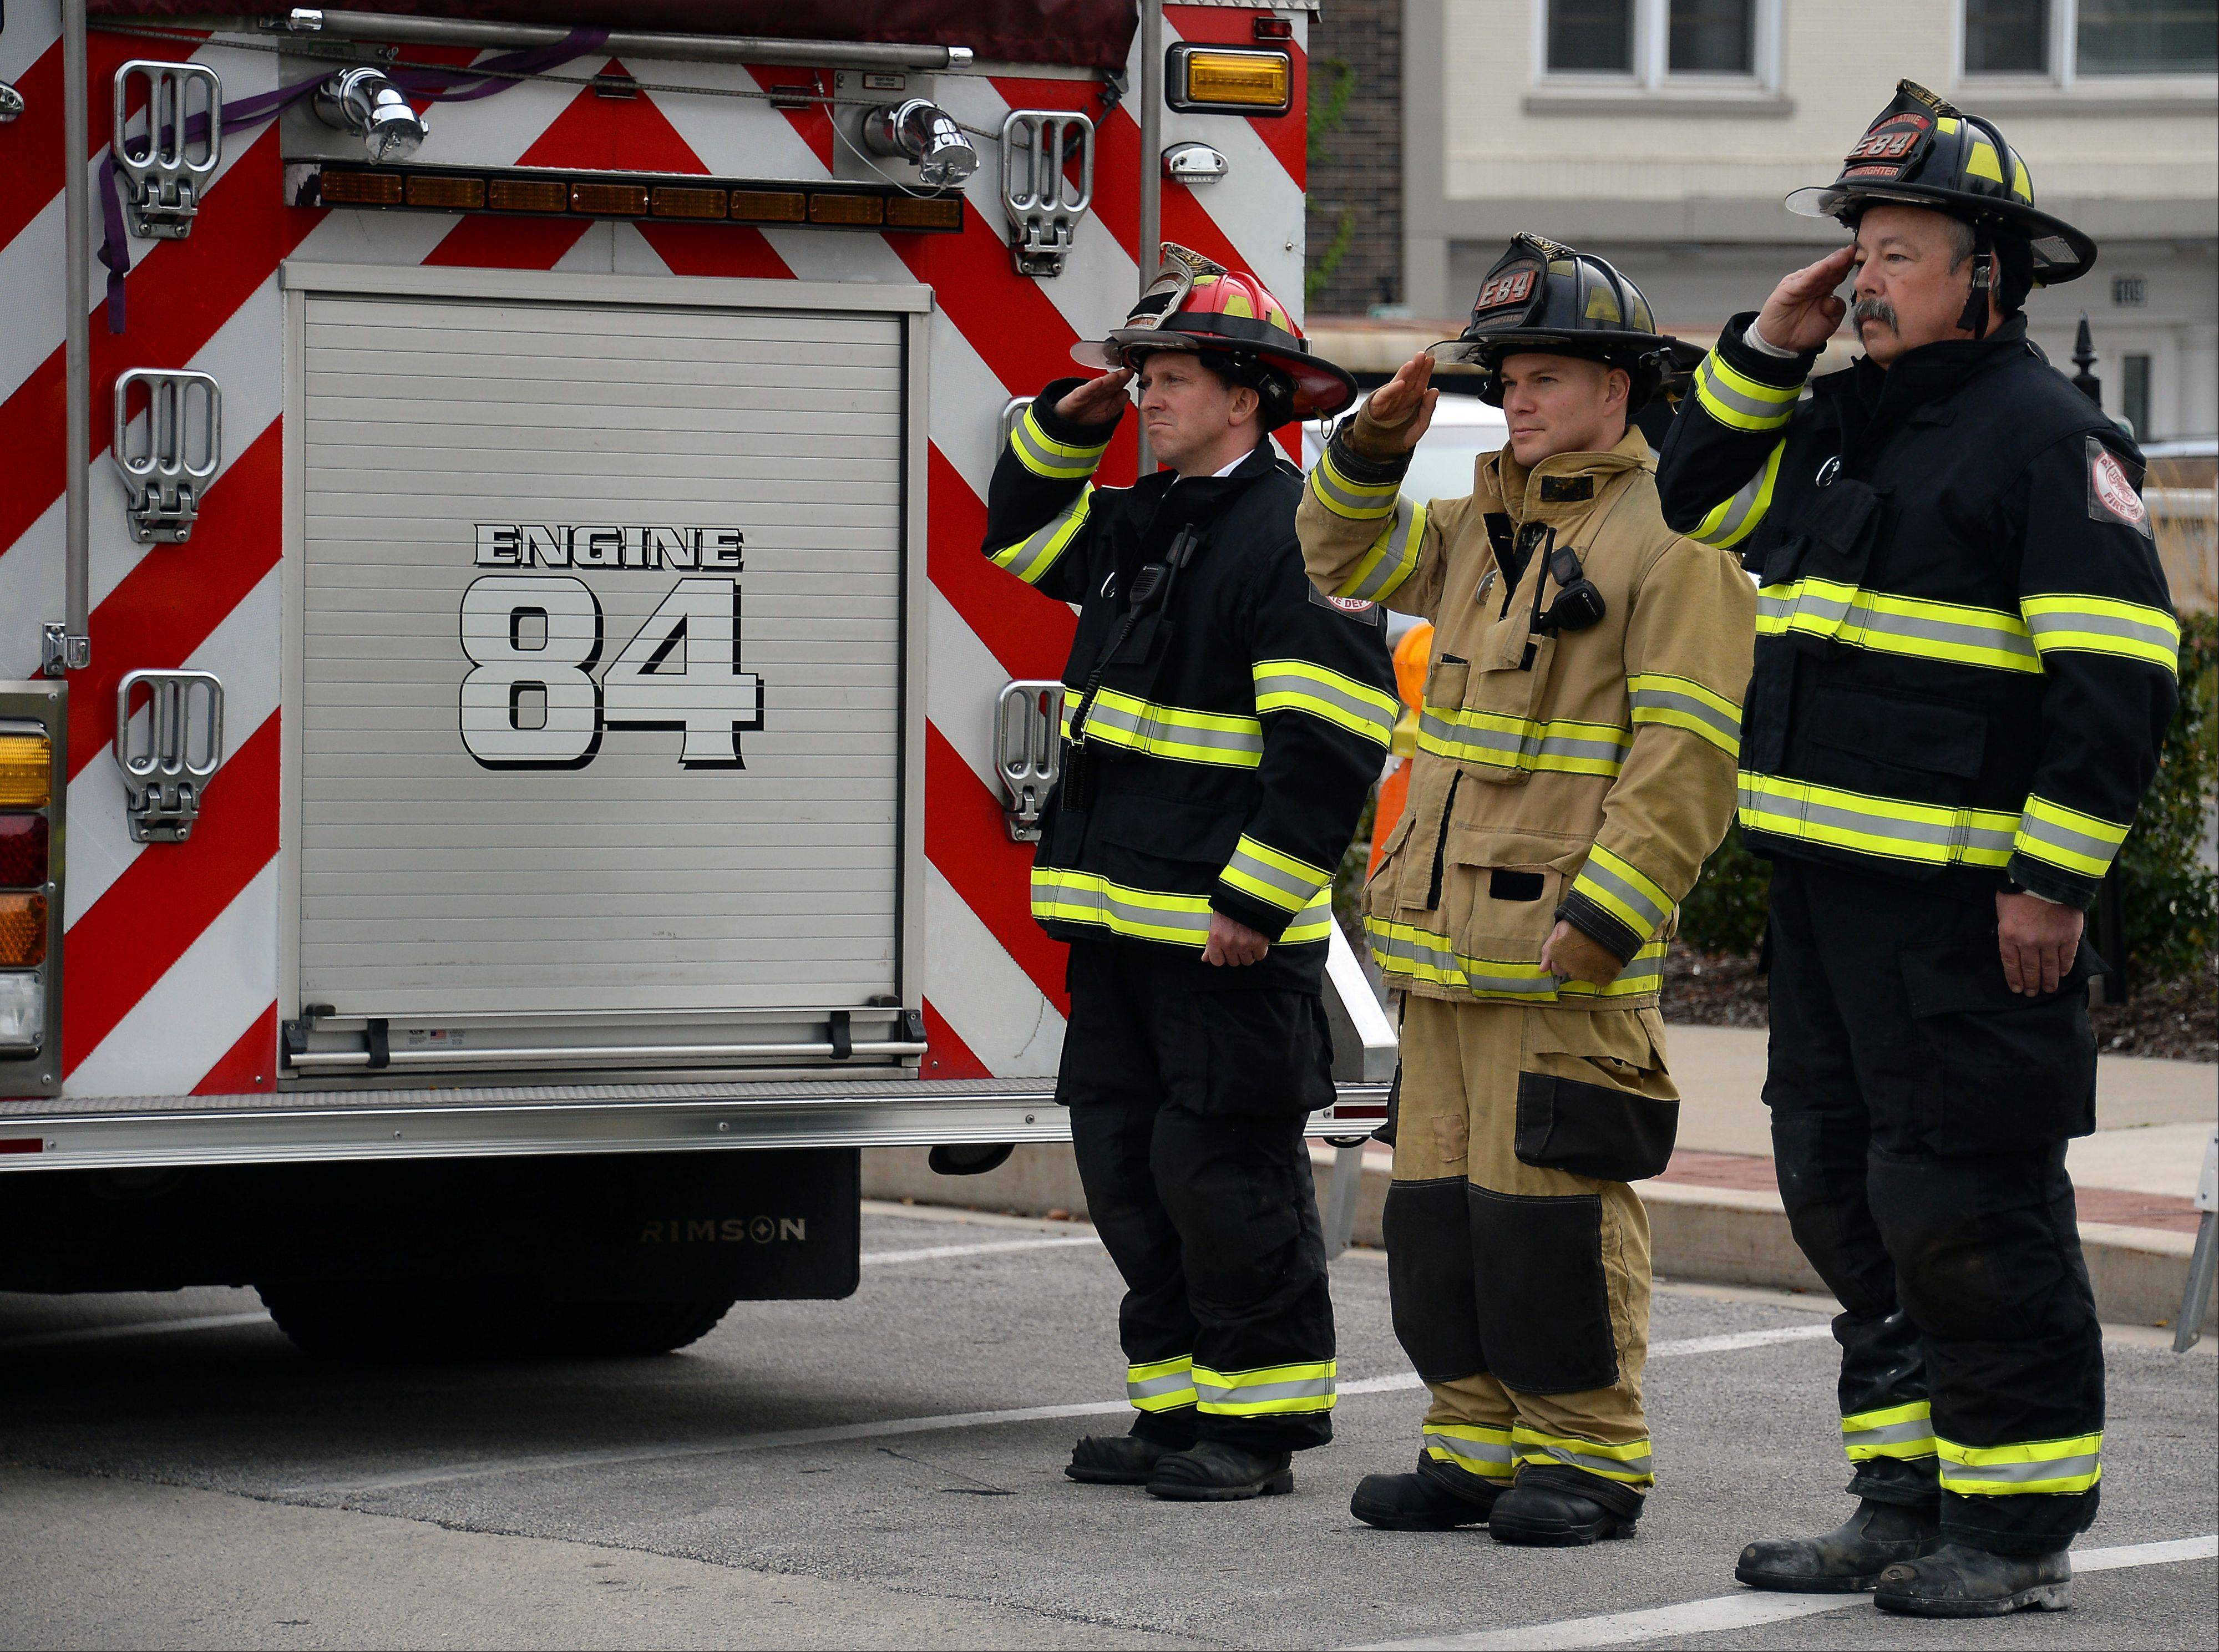 Palatine firefighters Lt. Scott Meservey, Chris Meuret and Jim Samack stand at attention during a ceremony Tuesday morning at the Firefighter's Memorial in downtown Palatine to honor two volunteer firefighters who died after a passenger train struck their fire truck Oct. 1, 1946.